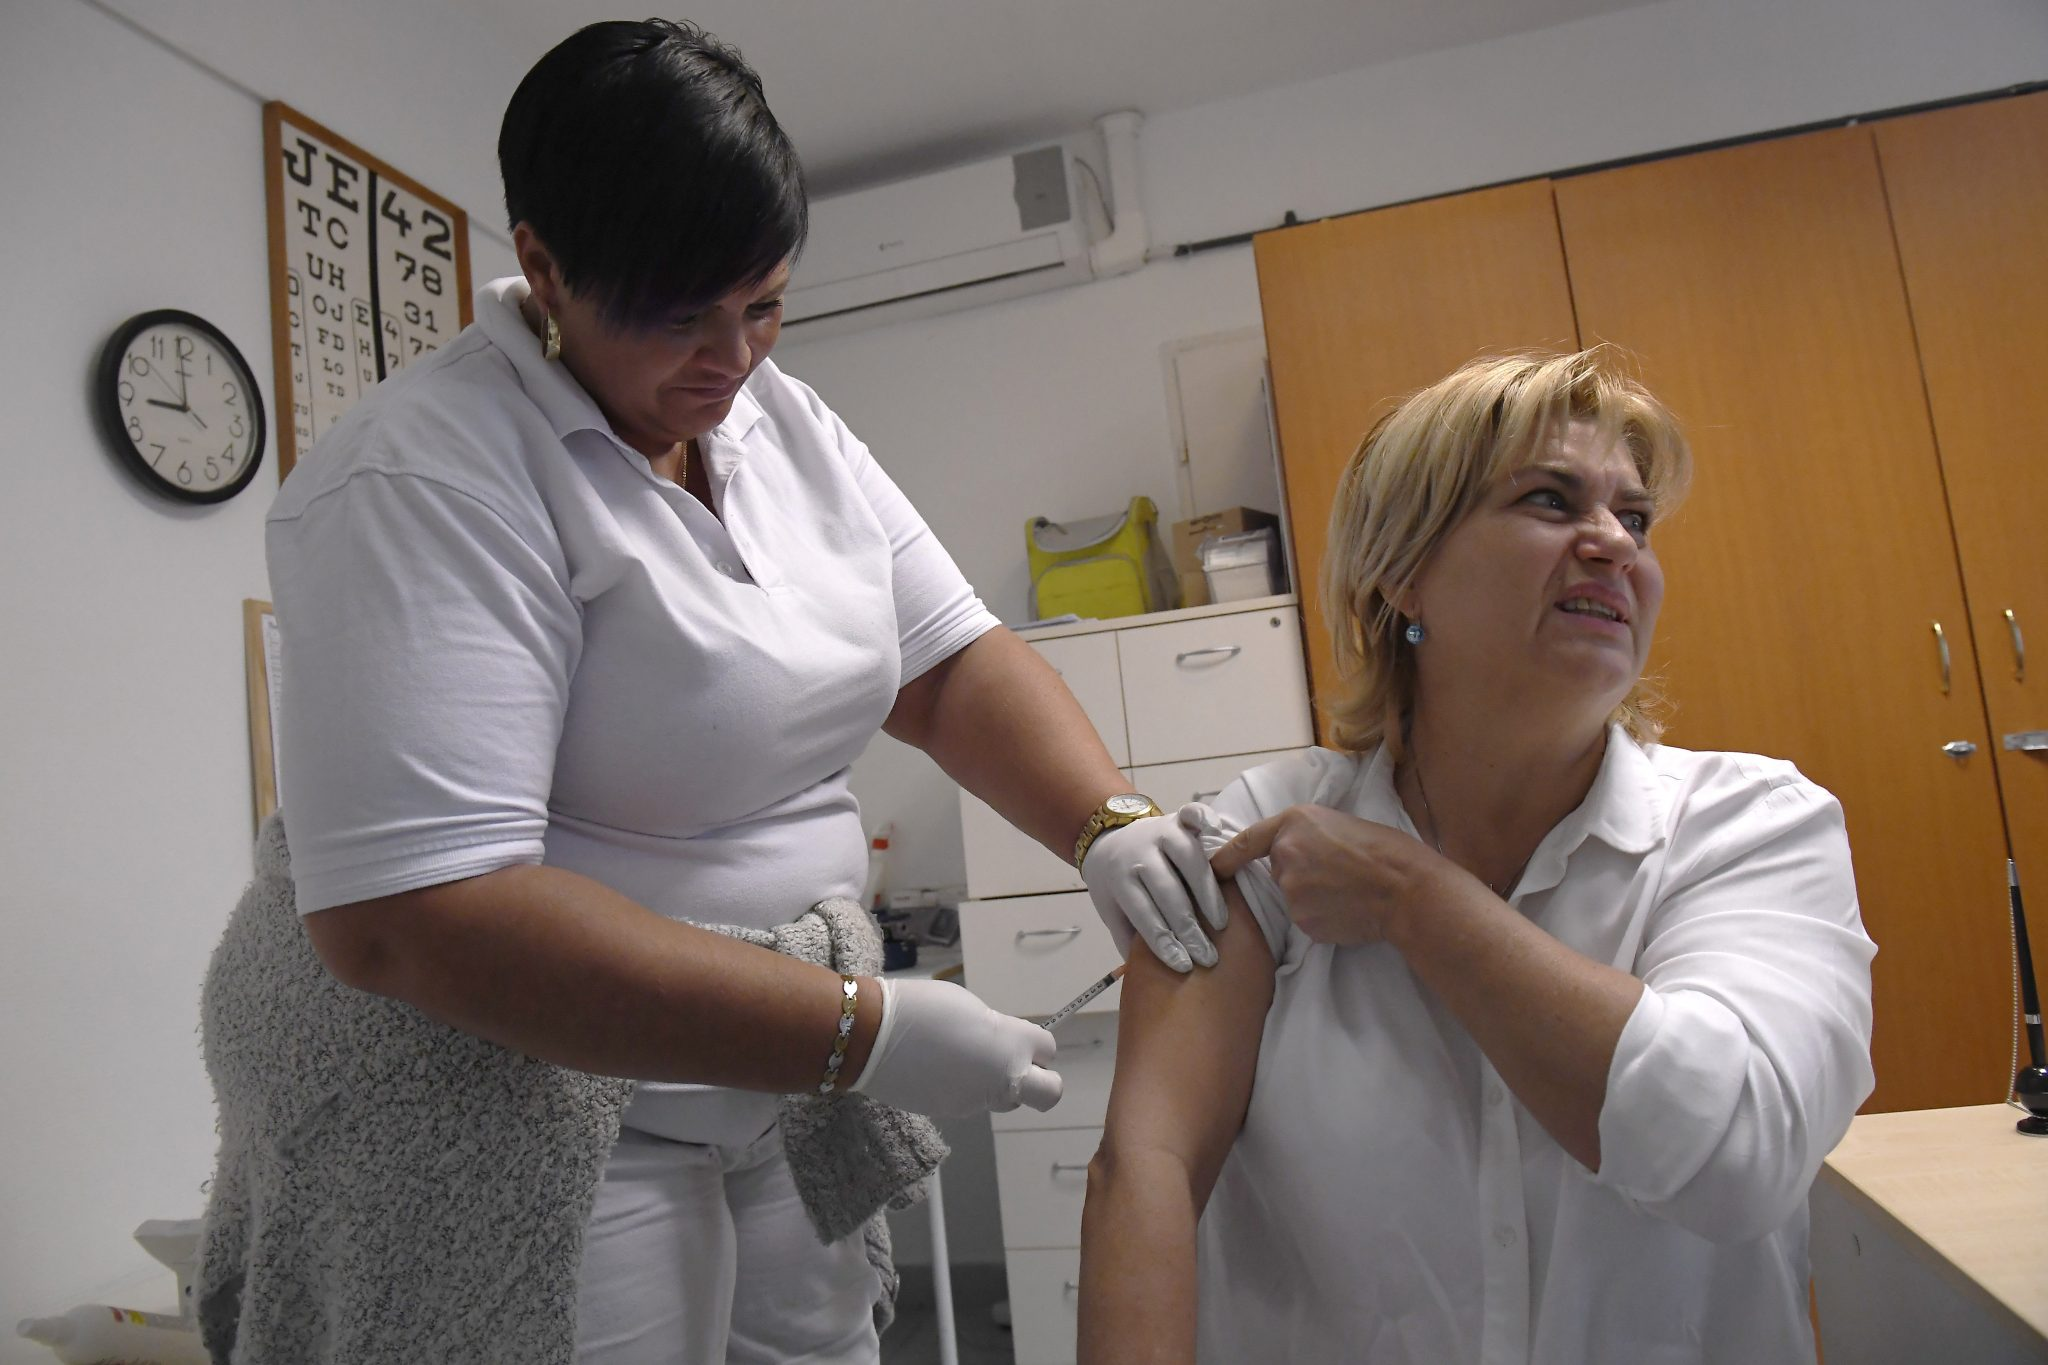 Coronavirus - Chief Infectologist: Getting Flu Jab More Important than Before